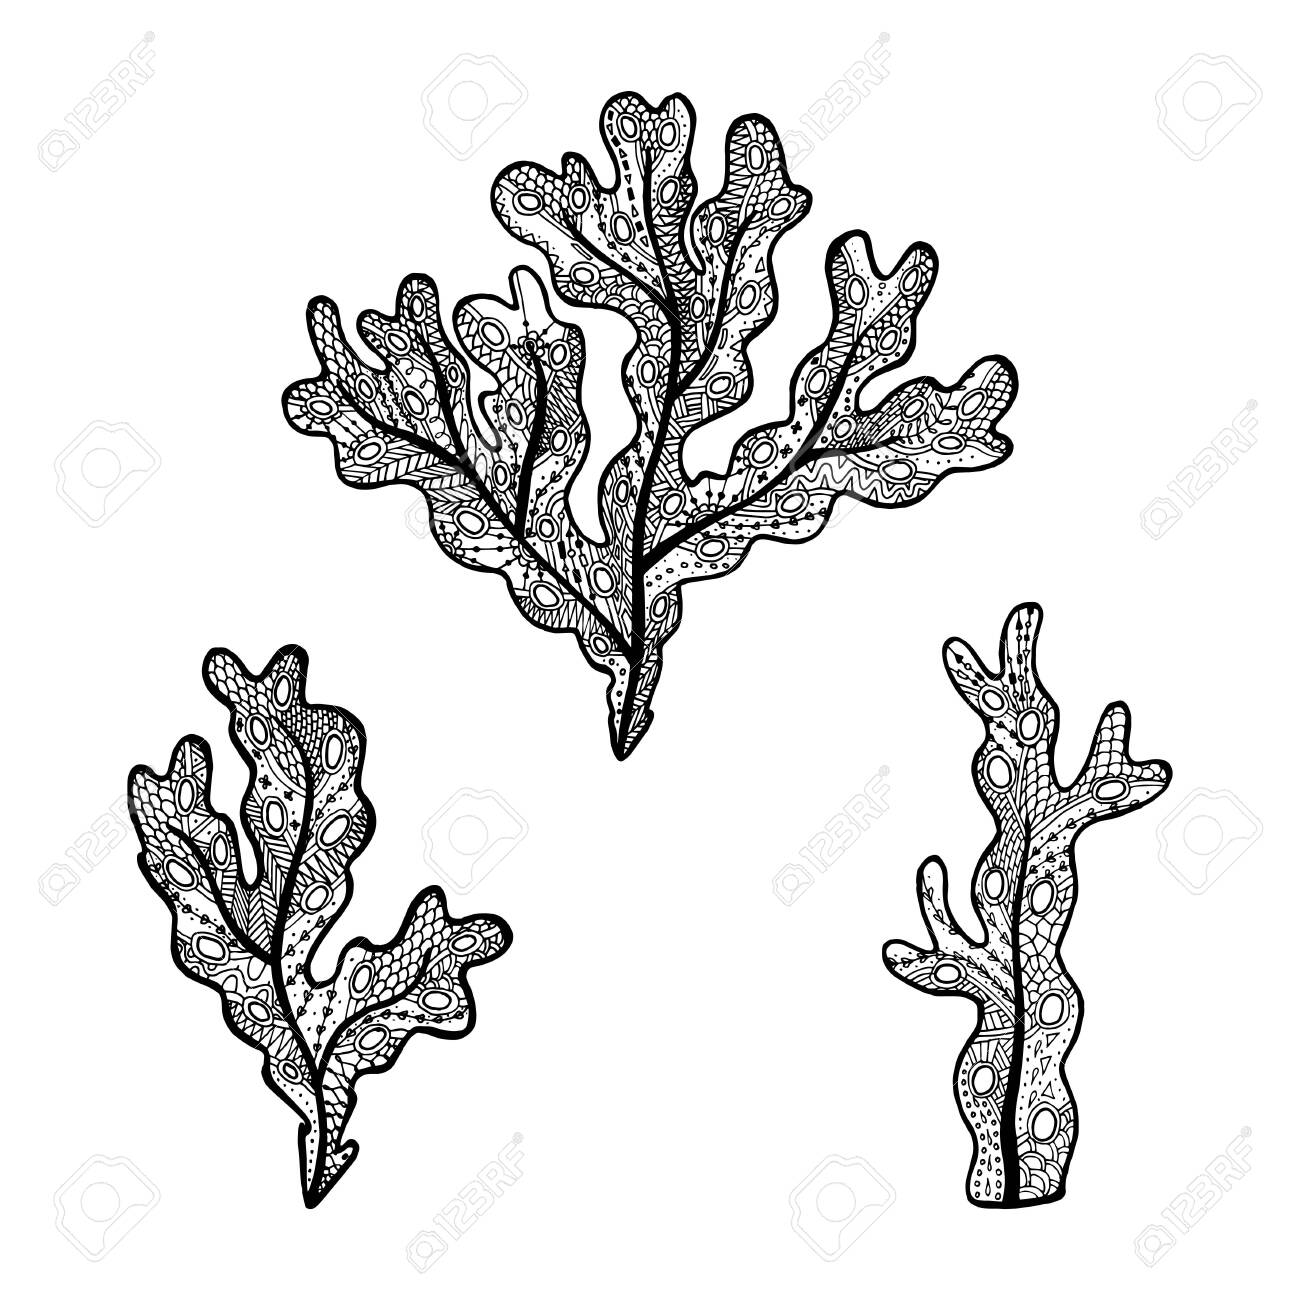 Seaweed Coloring Pages for Kids   Coloring pages, Sea plants ...   1300x1300